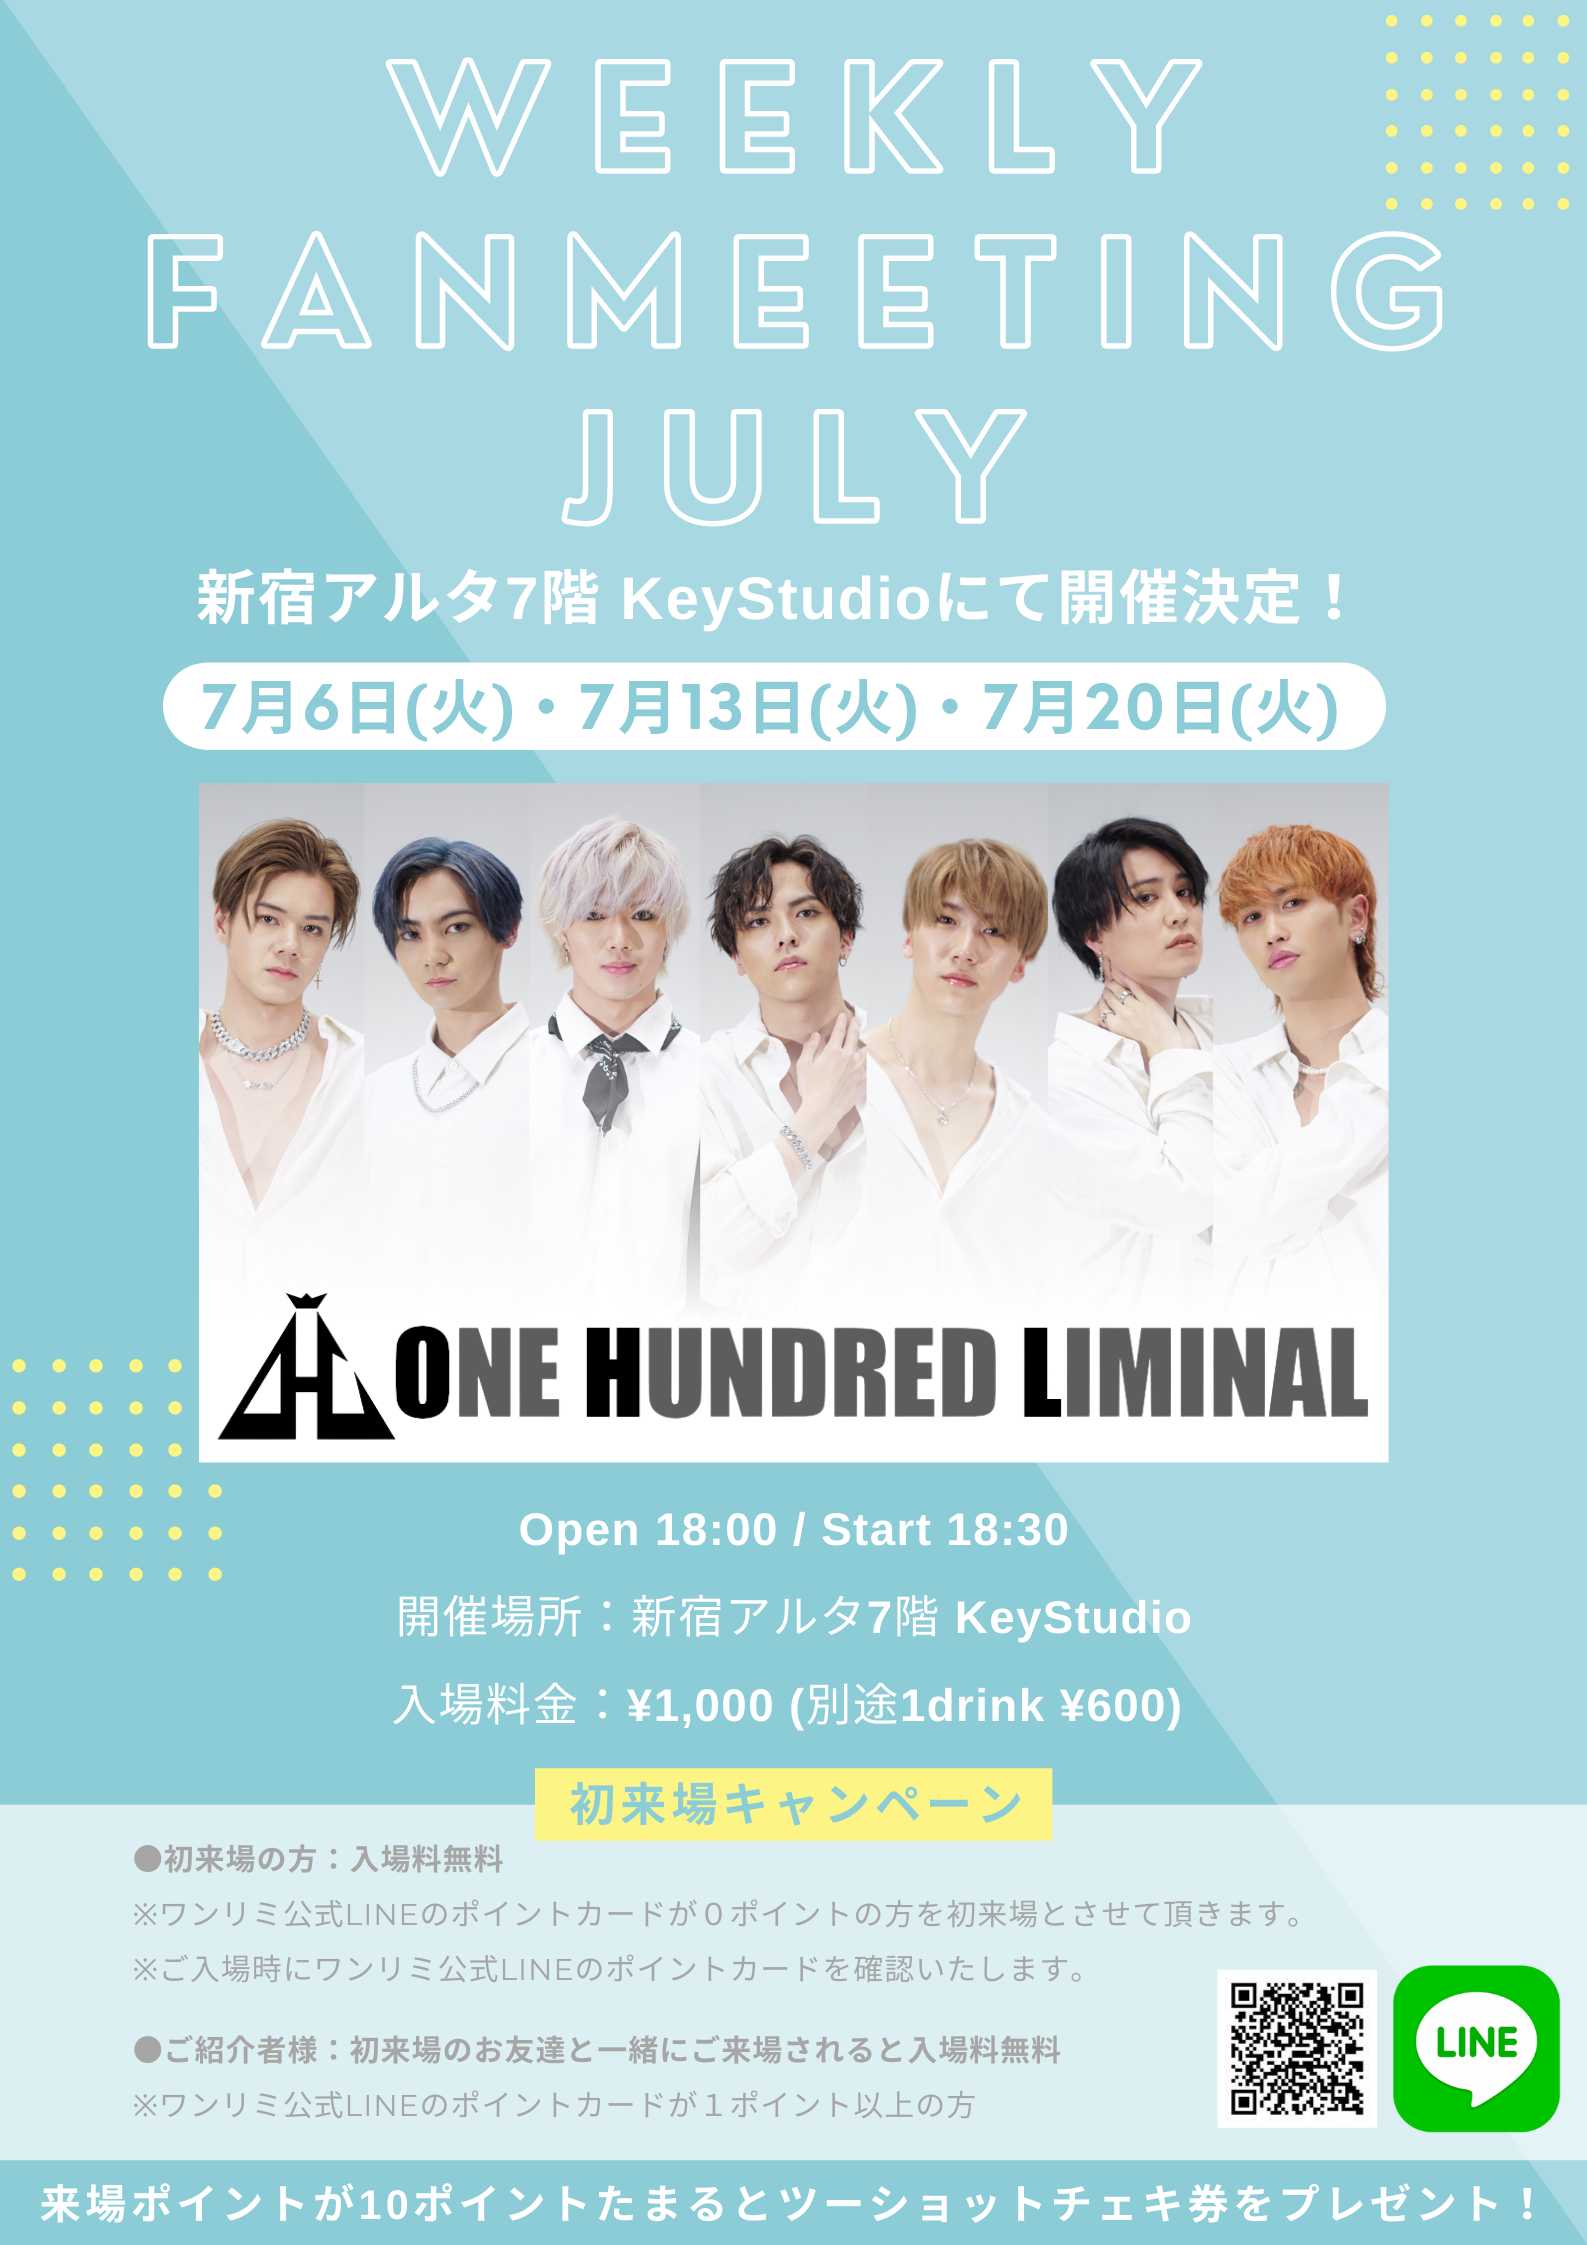 Weekly FanMeeting July 07.06